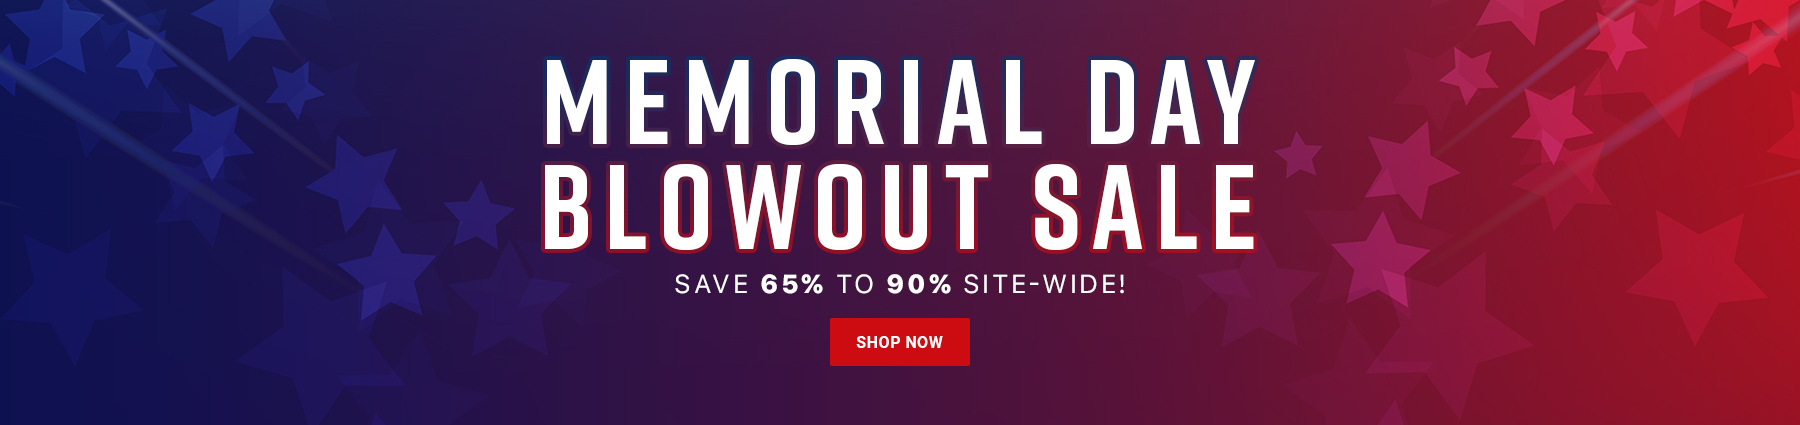 Memorial Day Blowout Sale